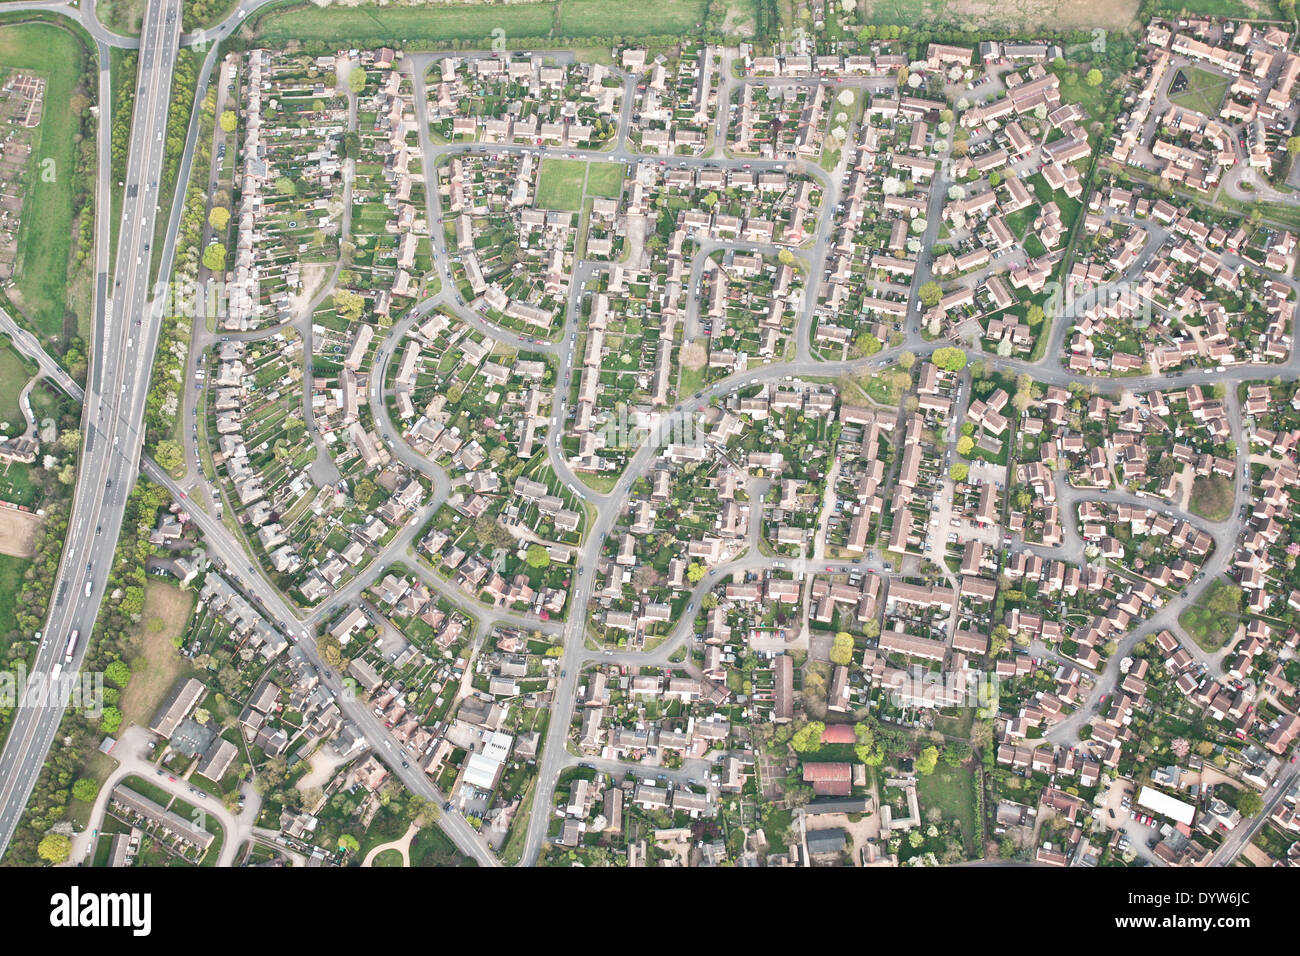 Residential area in Godmanchester, England - Stock Image